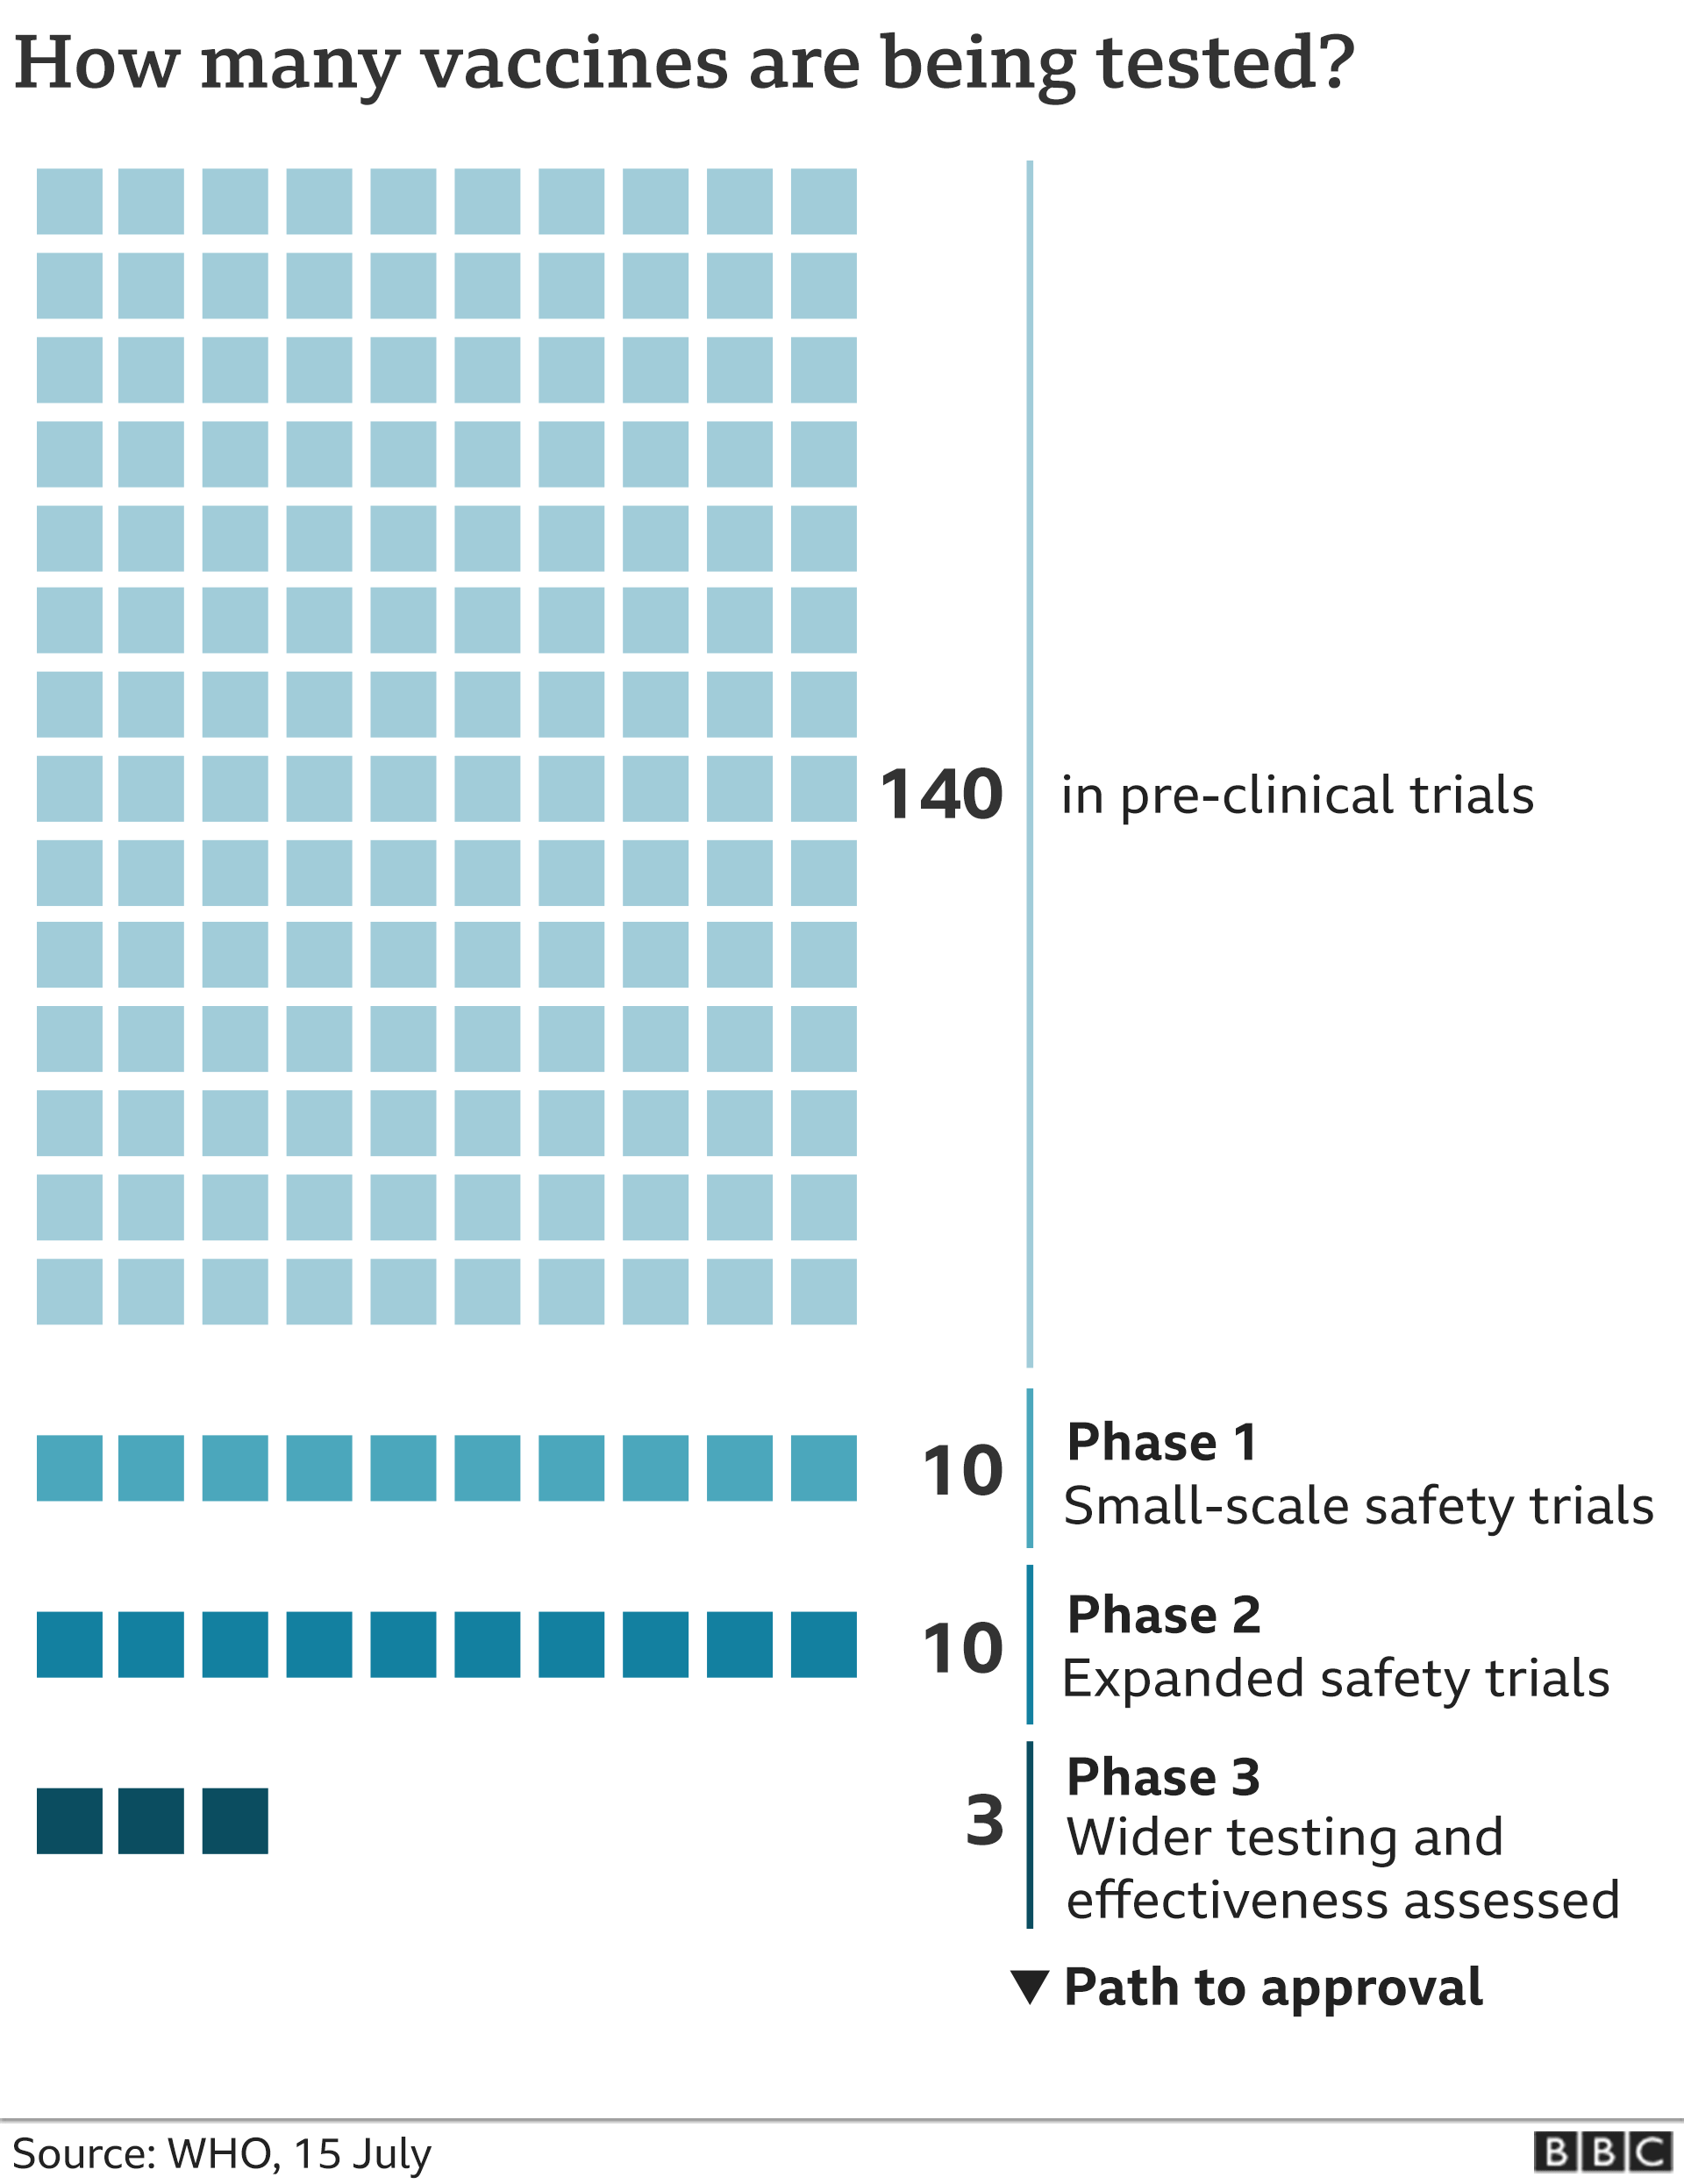 Vaccines in development graphic